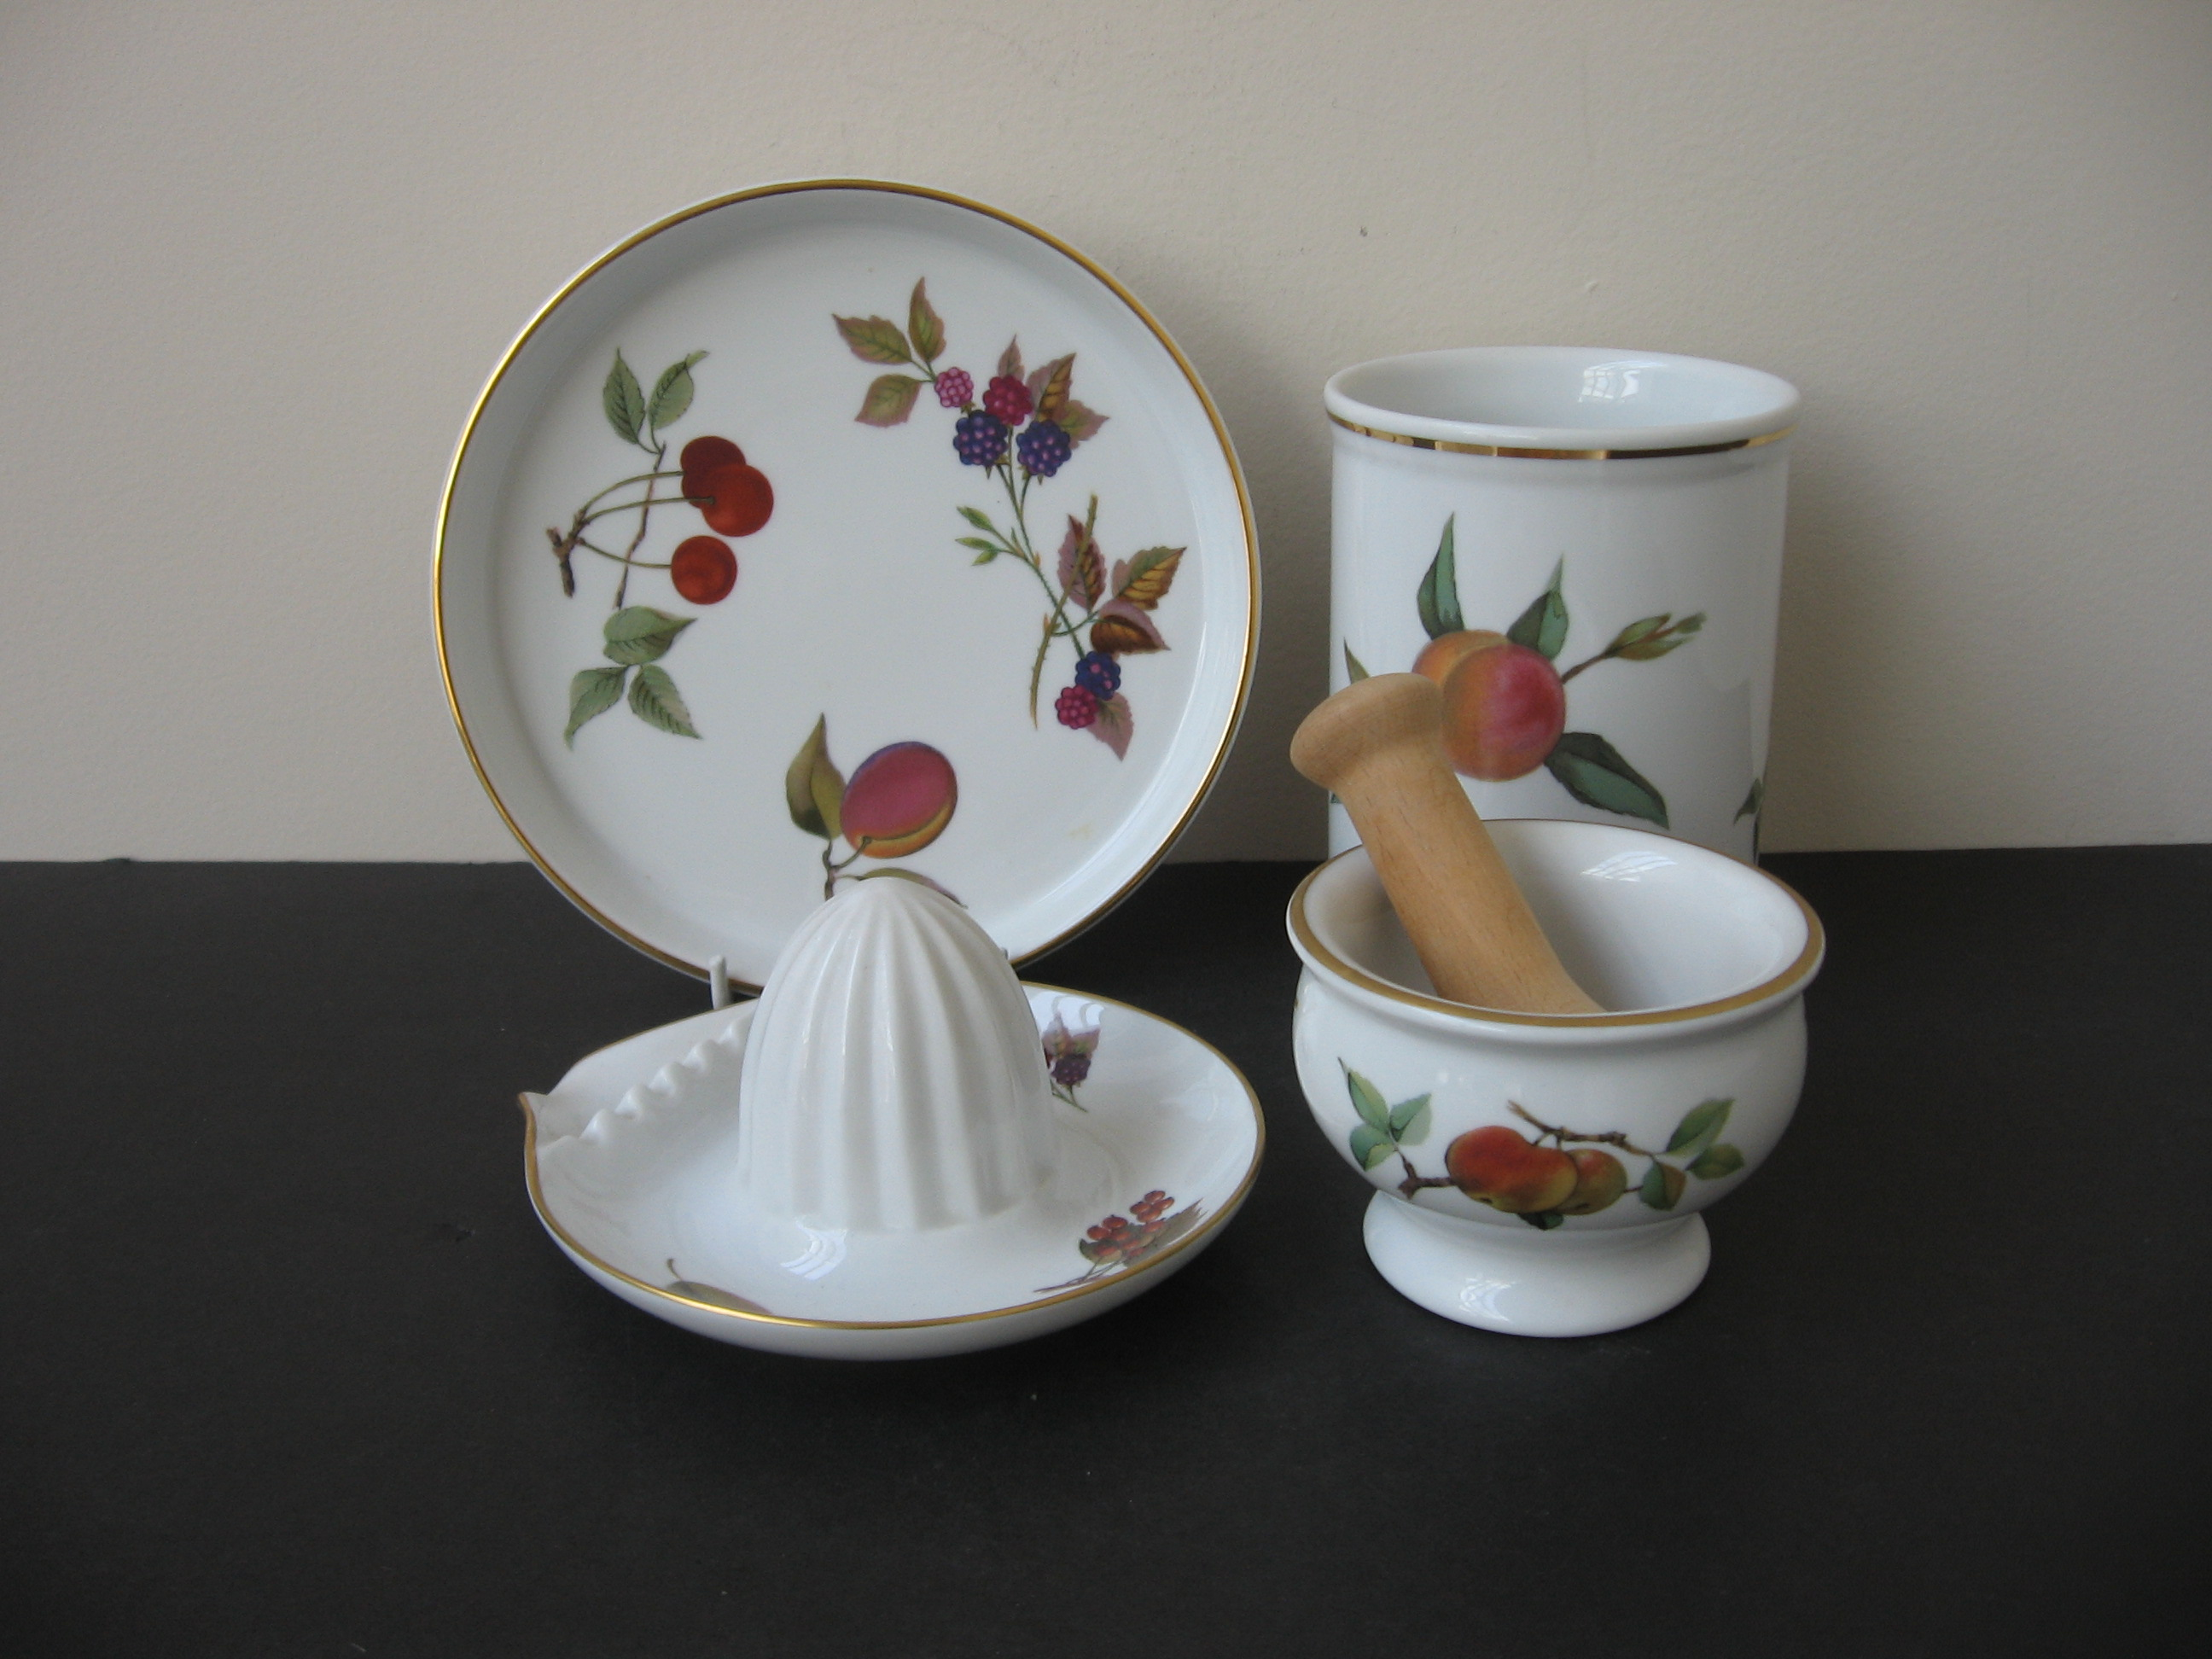 $50.00/Set. $50.00/Set : ROYAL WORCESTER FINE PORCELAIN ...